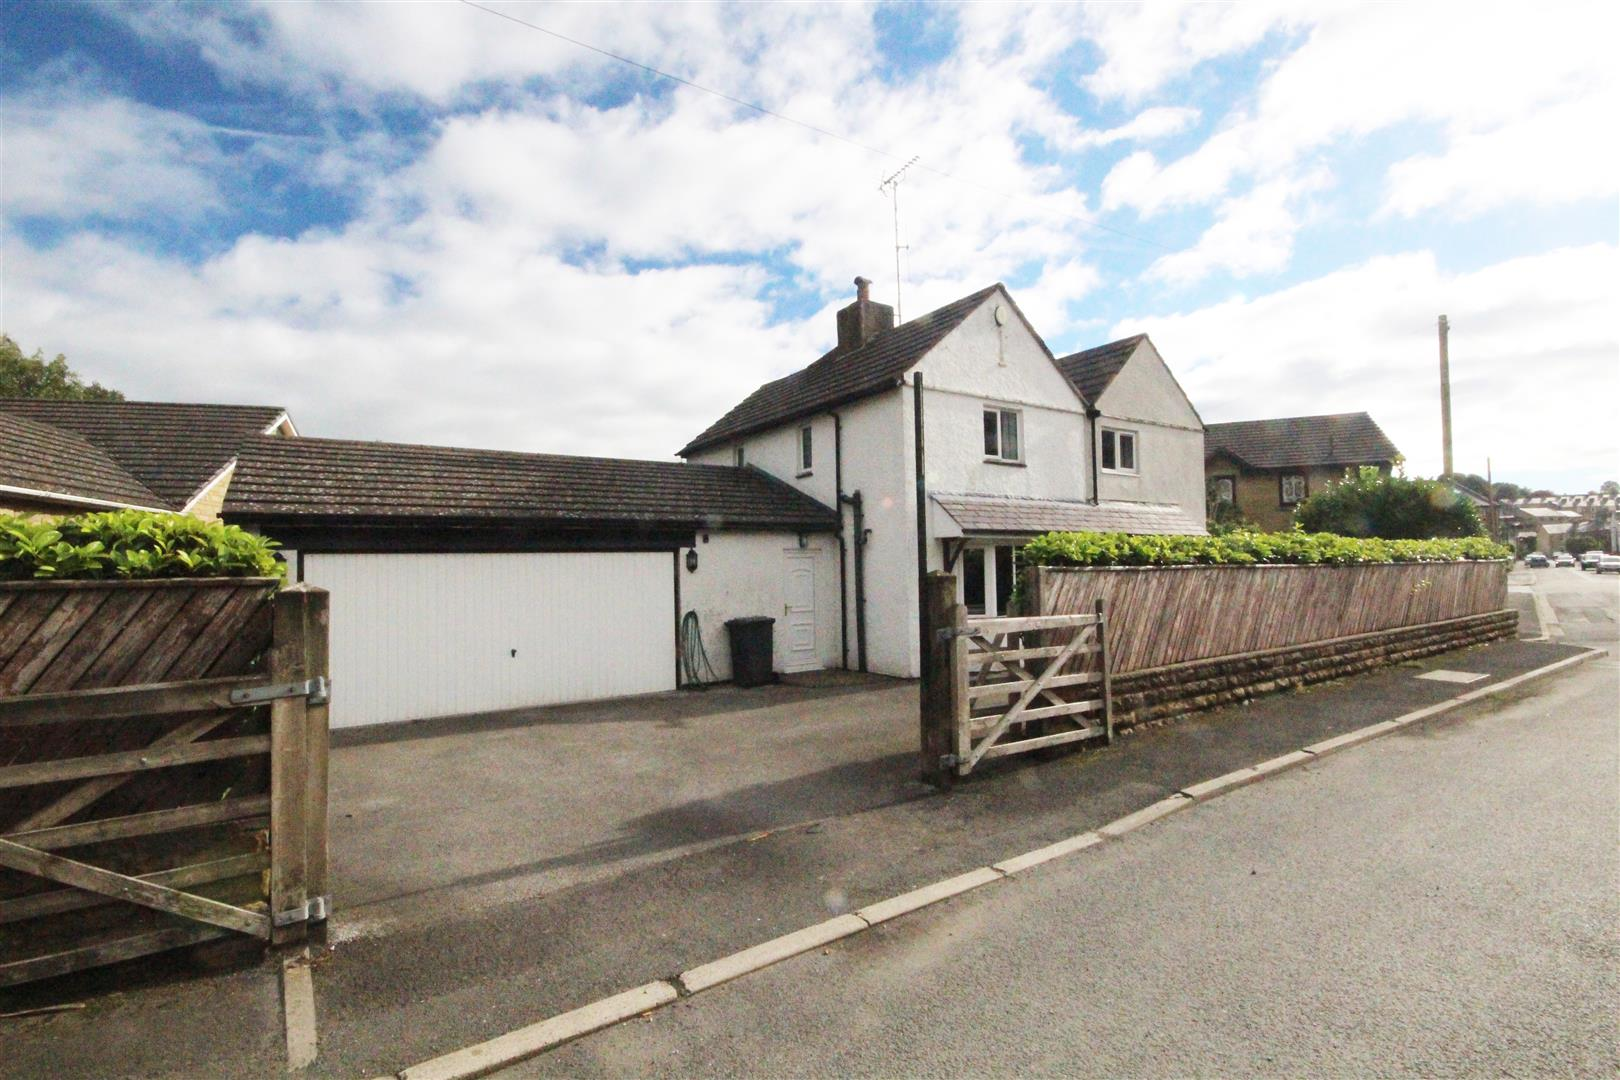 4 bedroom detached house For Sale in Foulridge, Colne - Property photograph